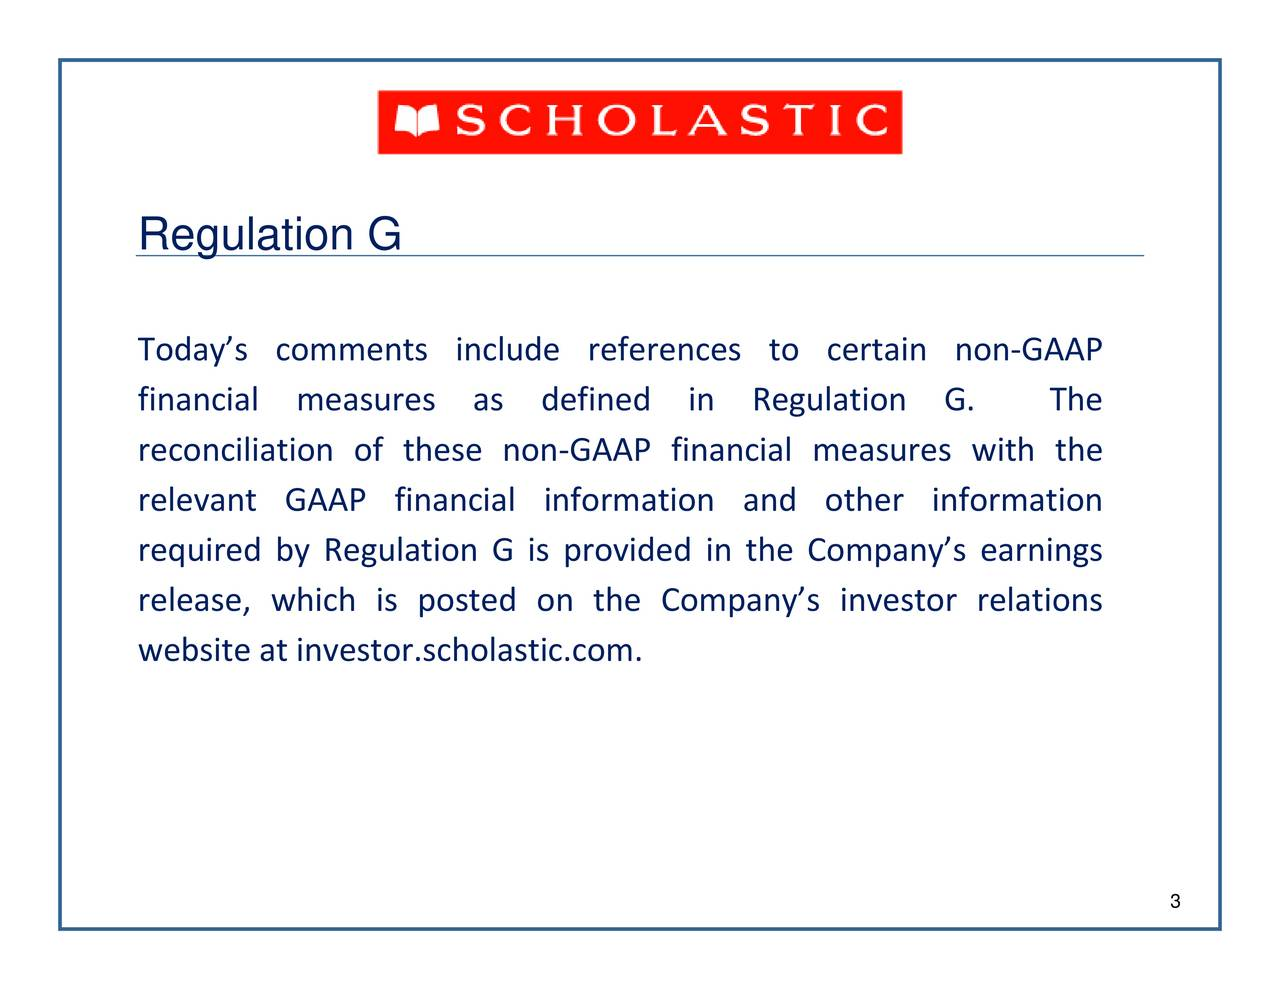 AAP GAAP financial measures with the Regul TotionsGcomments include references to certain nond.hoph